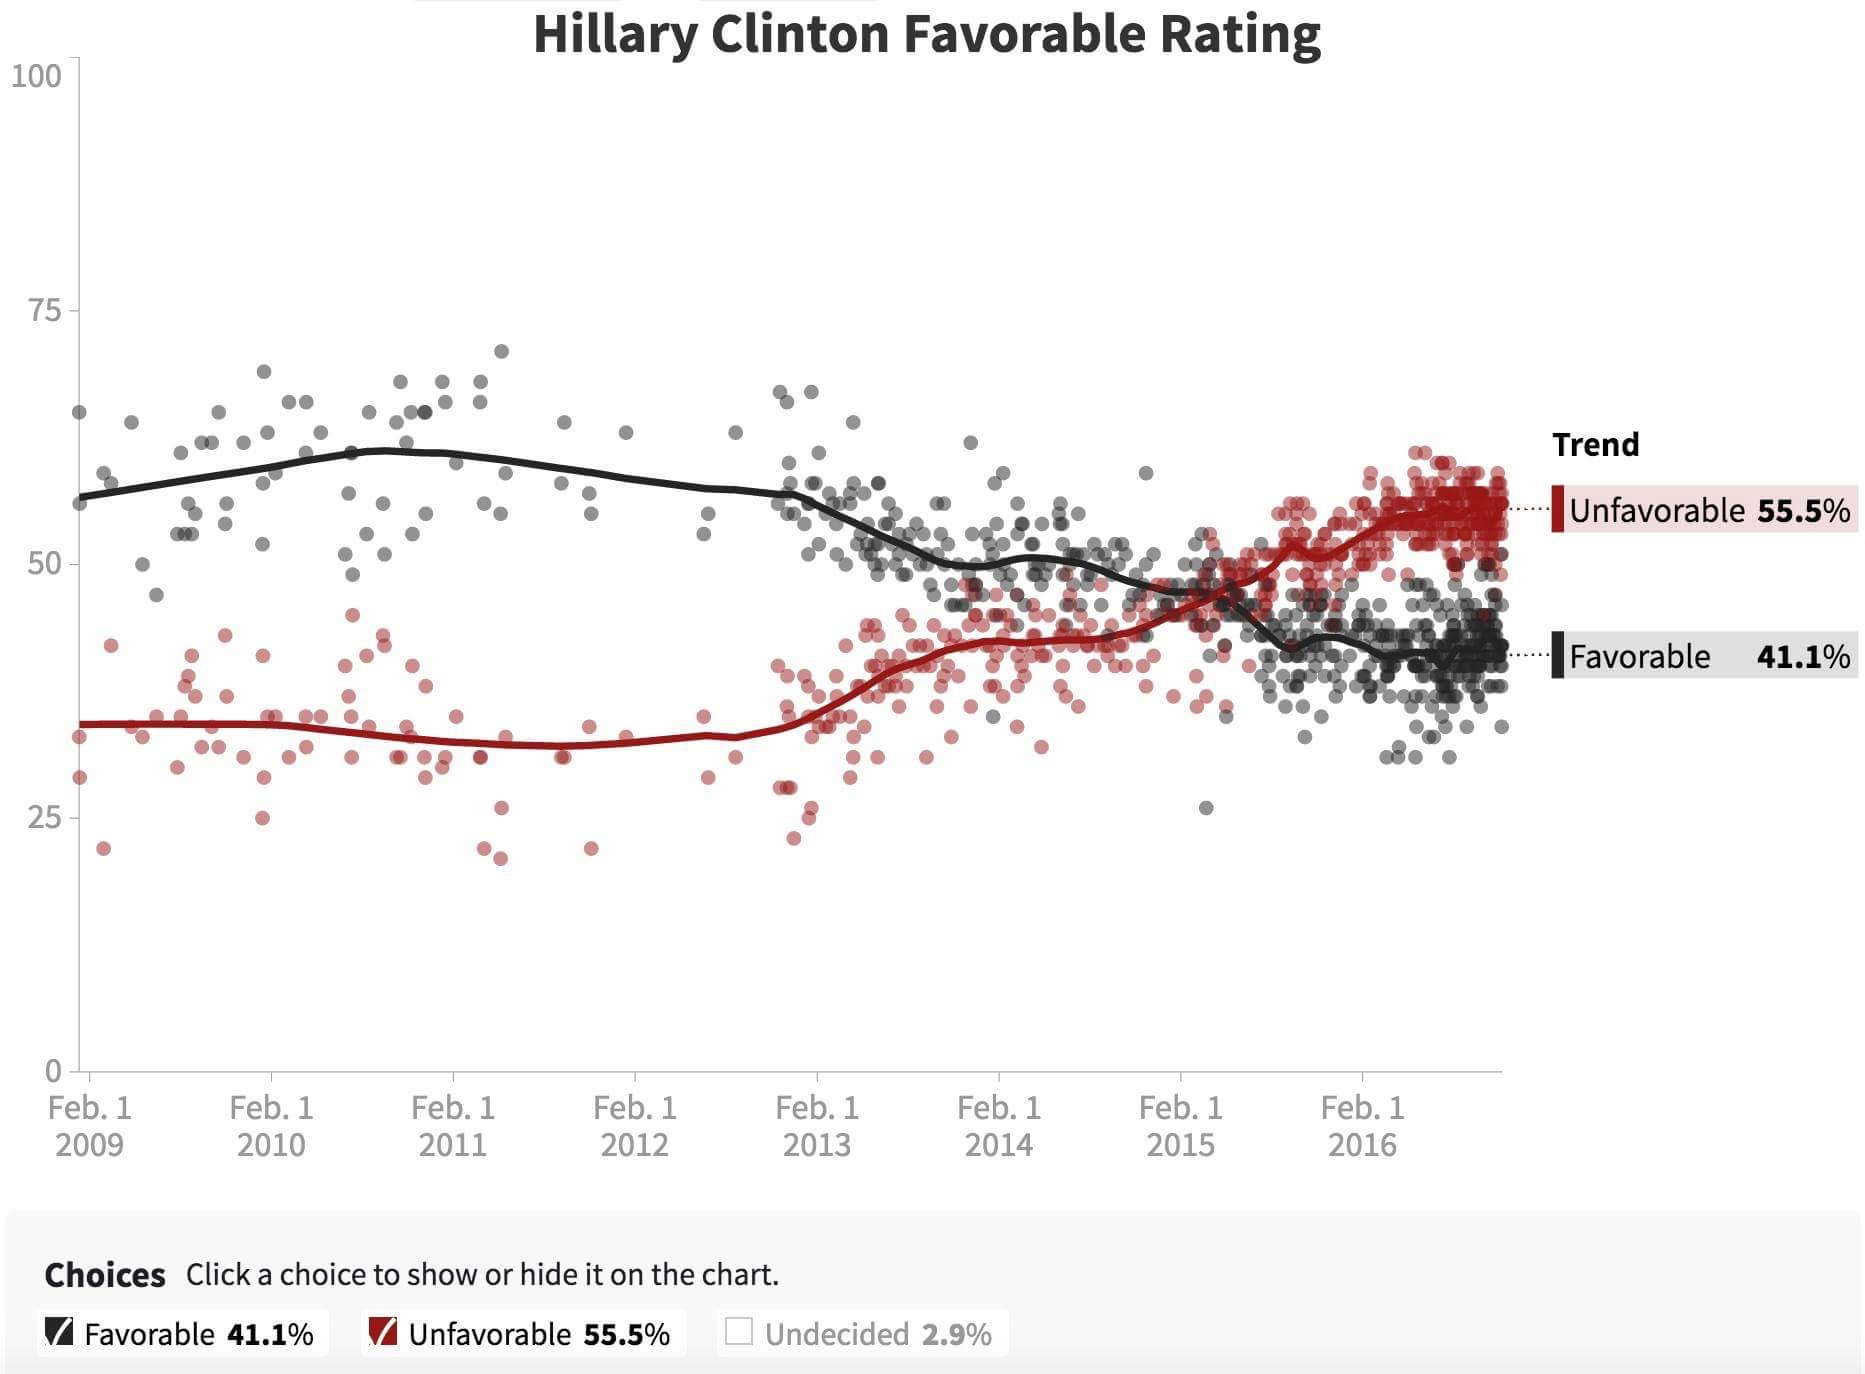 Hillary Clinton's favorable rating has slumped to a low 41%.